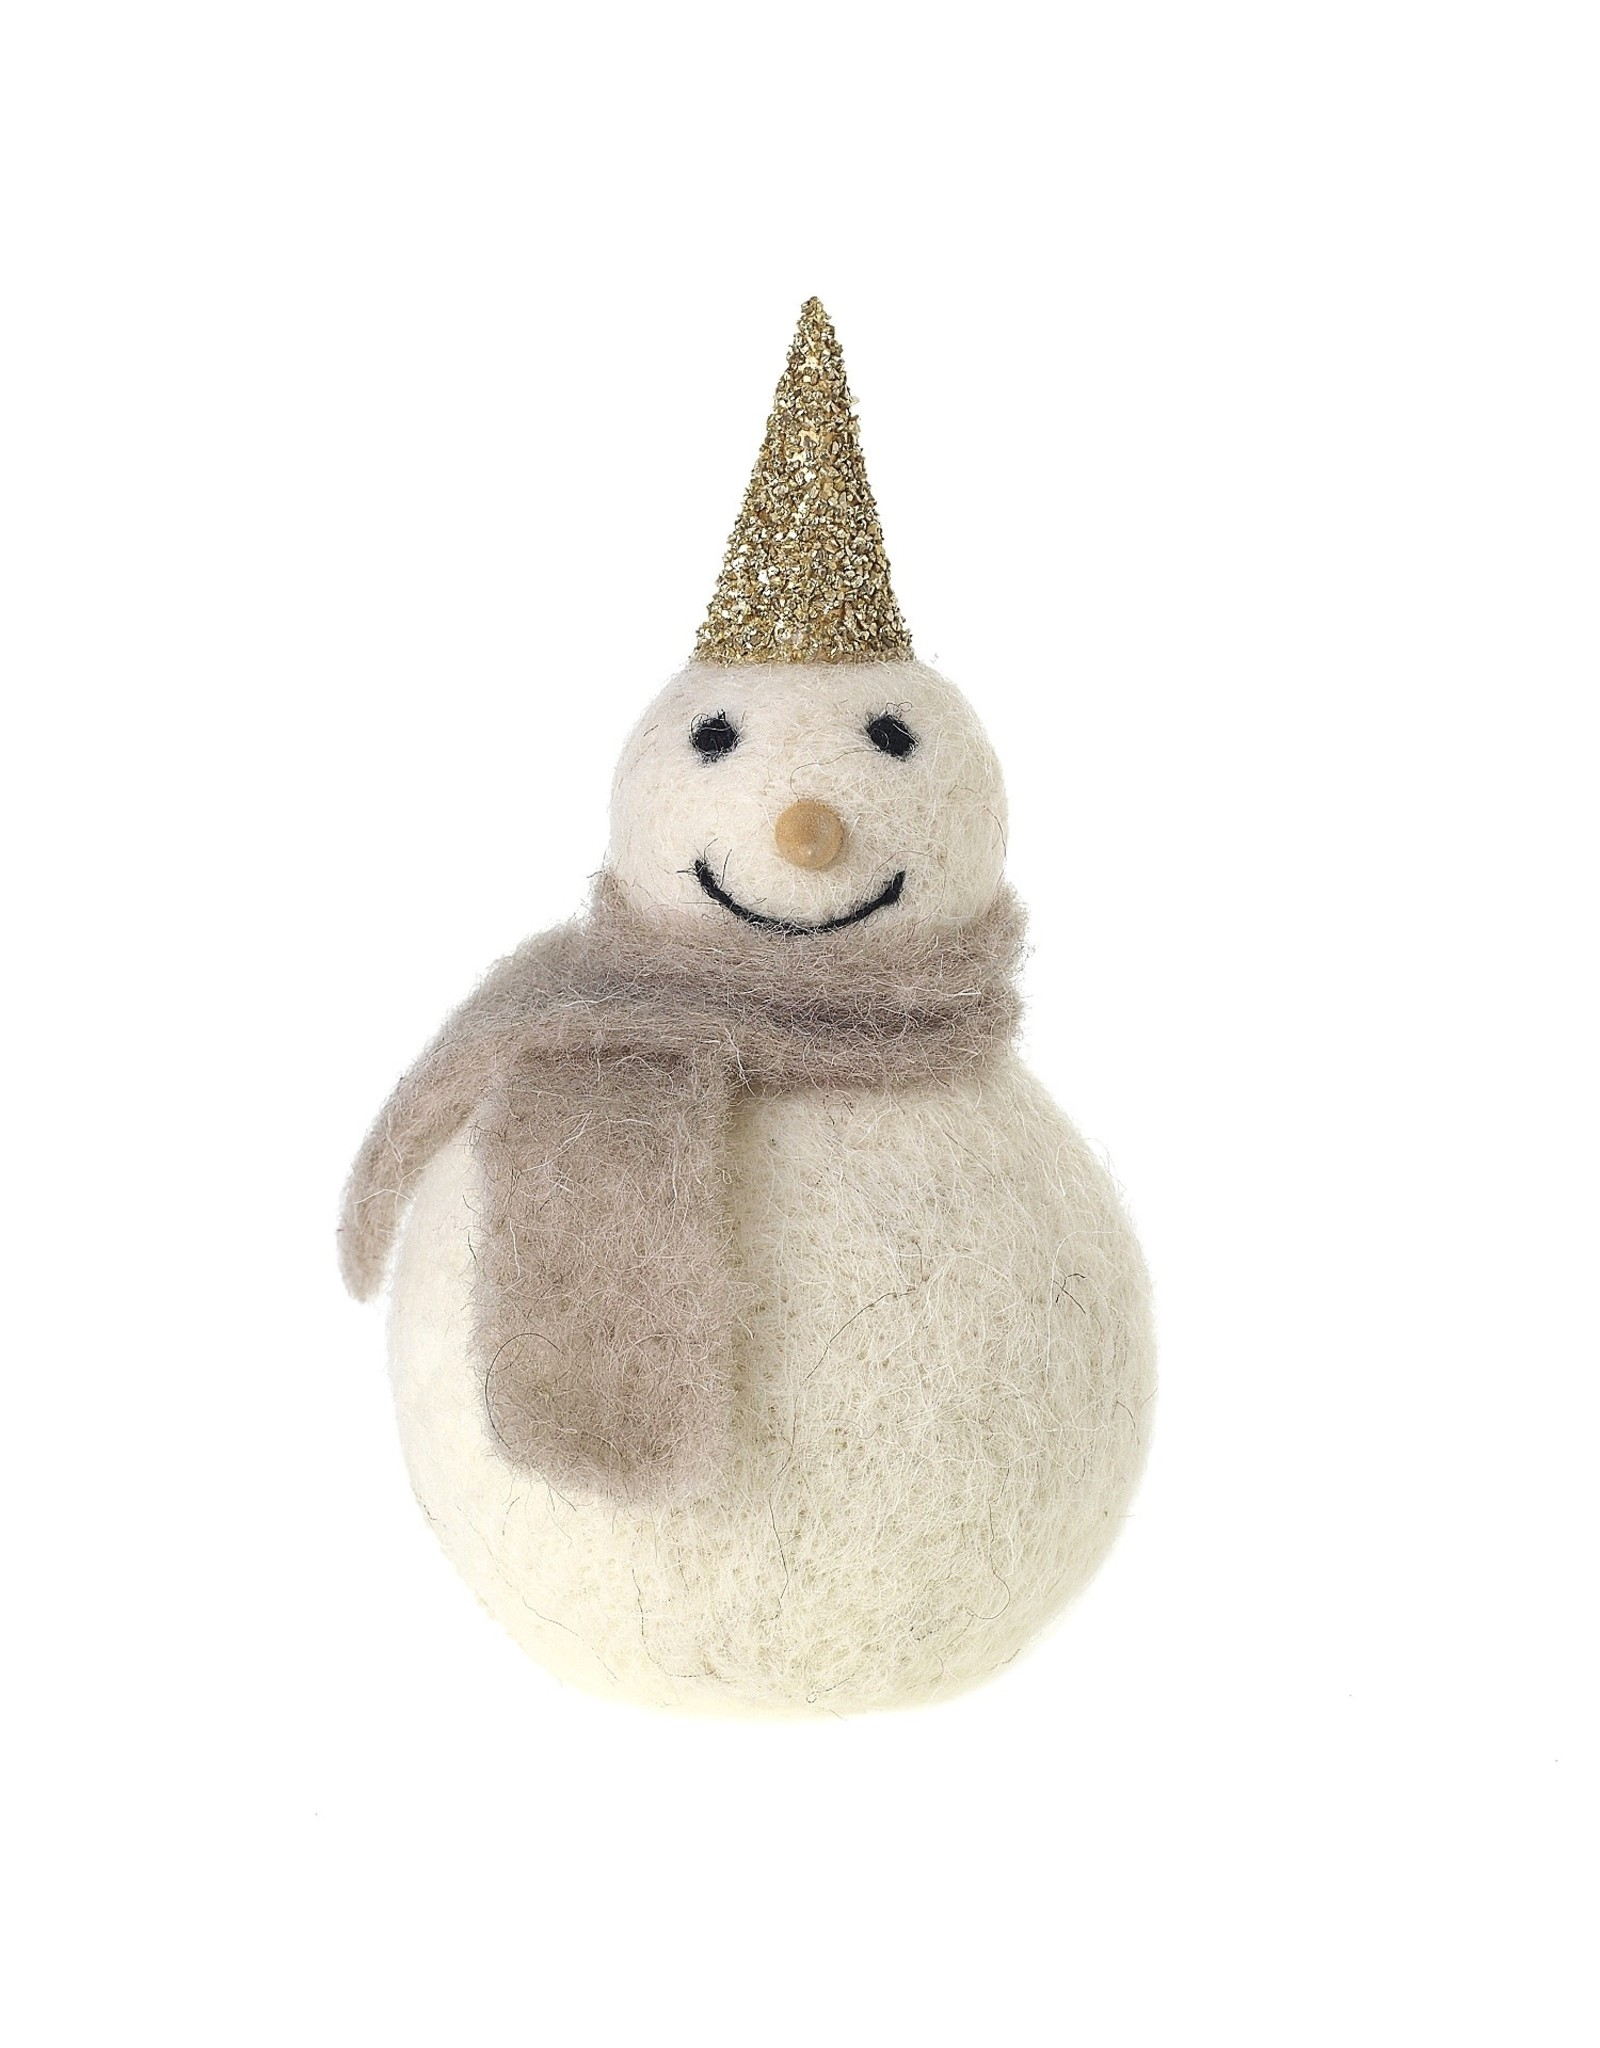 "Oak + Arrow Interiors Felt Frosty Figurine 3"" x 6"""